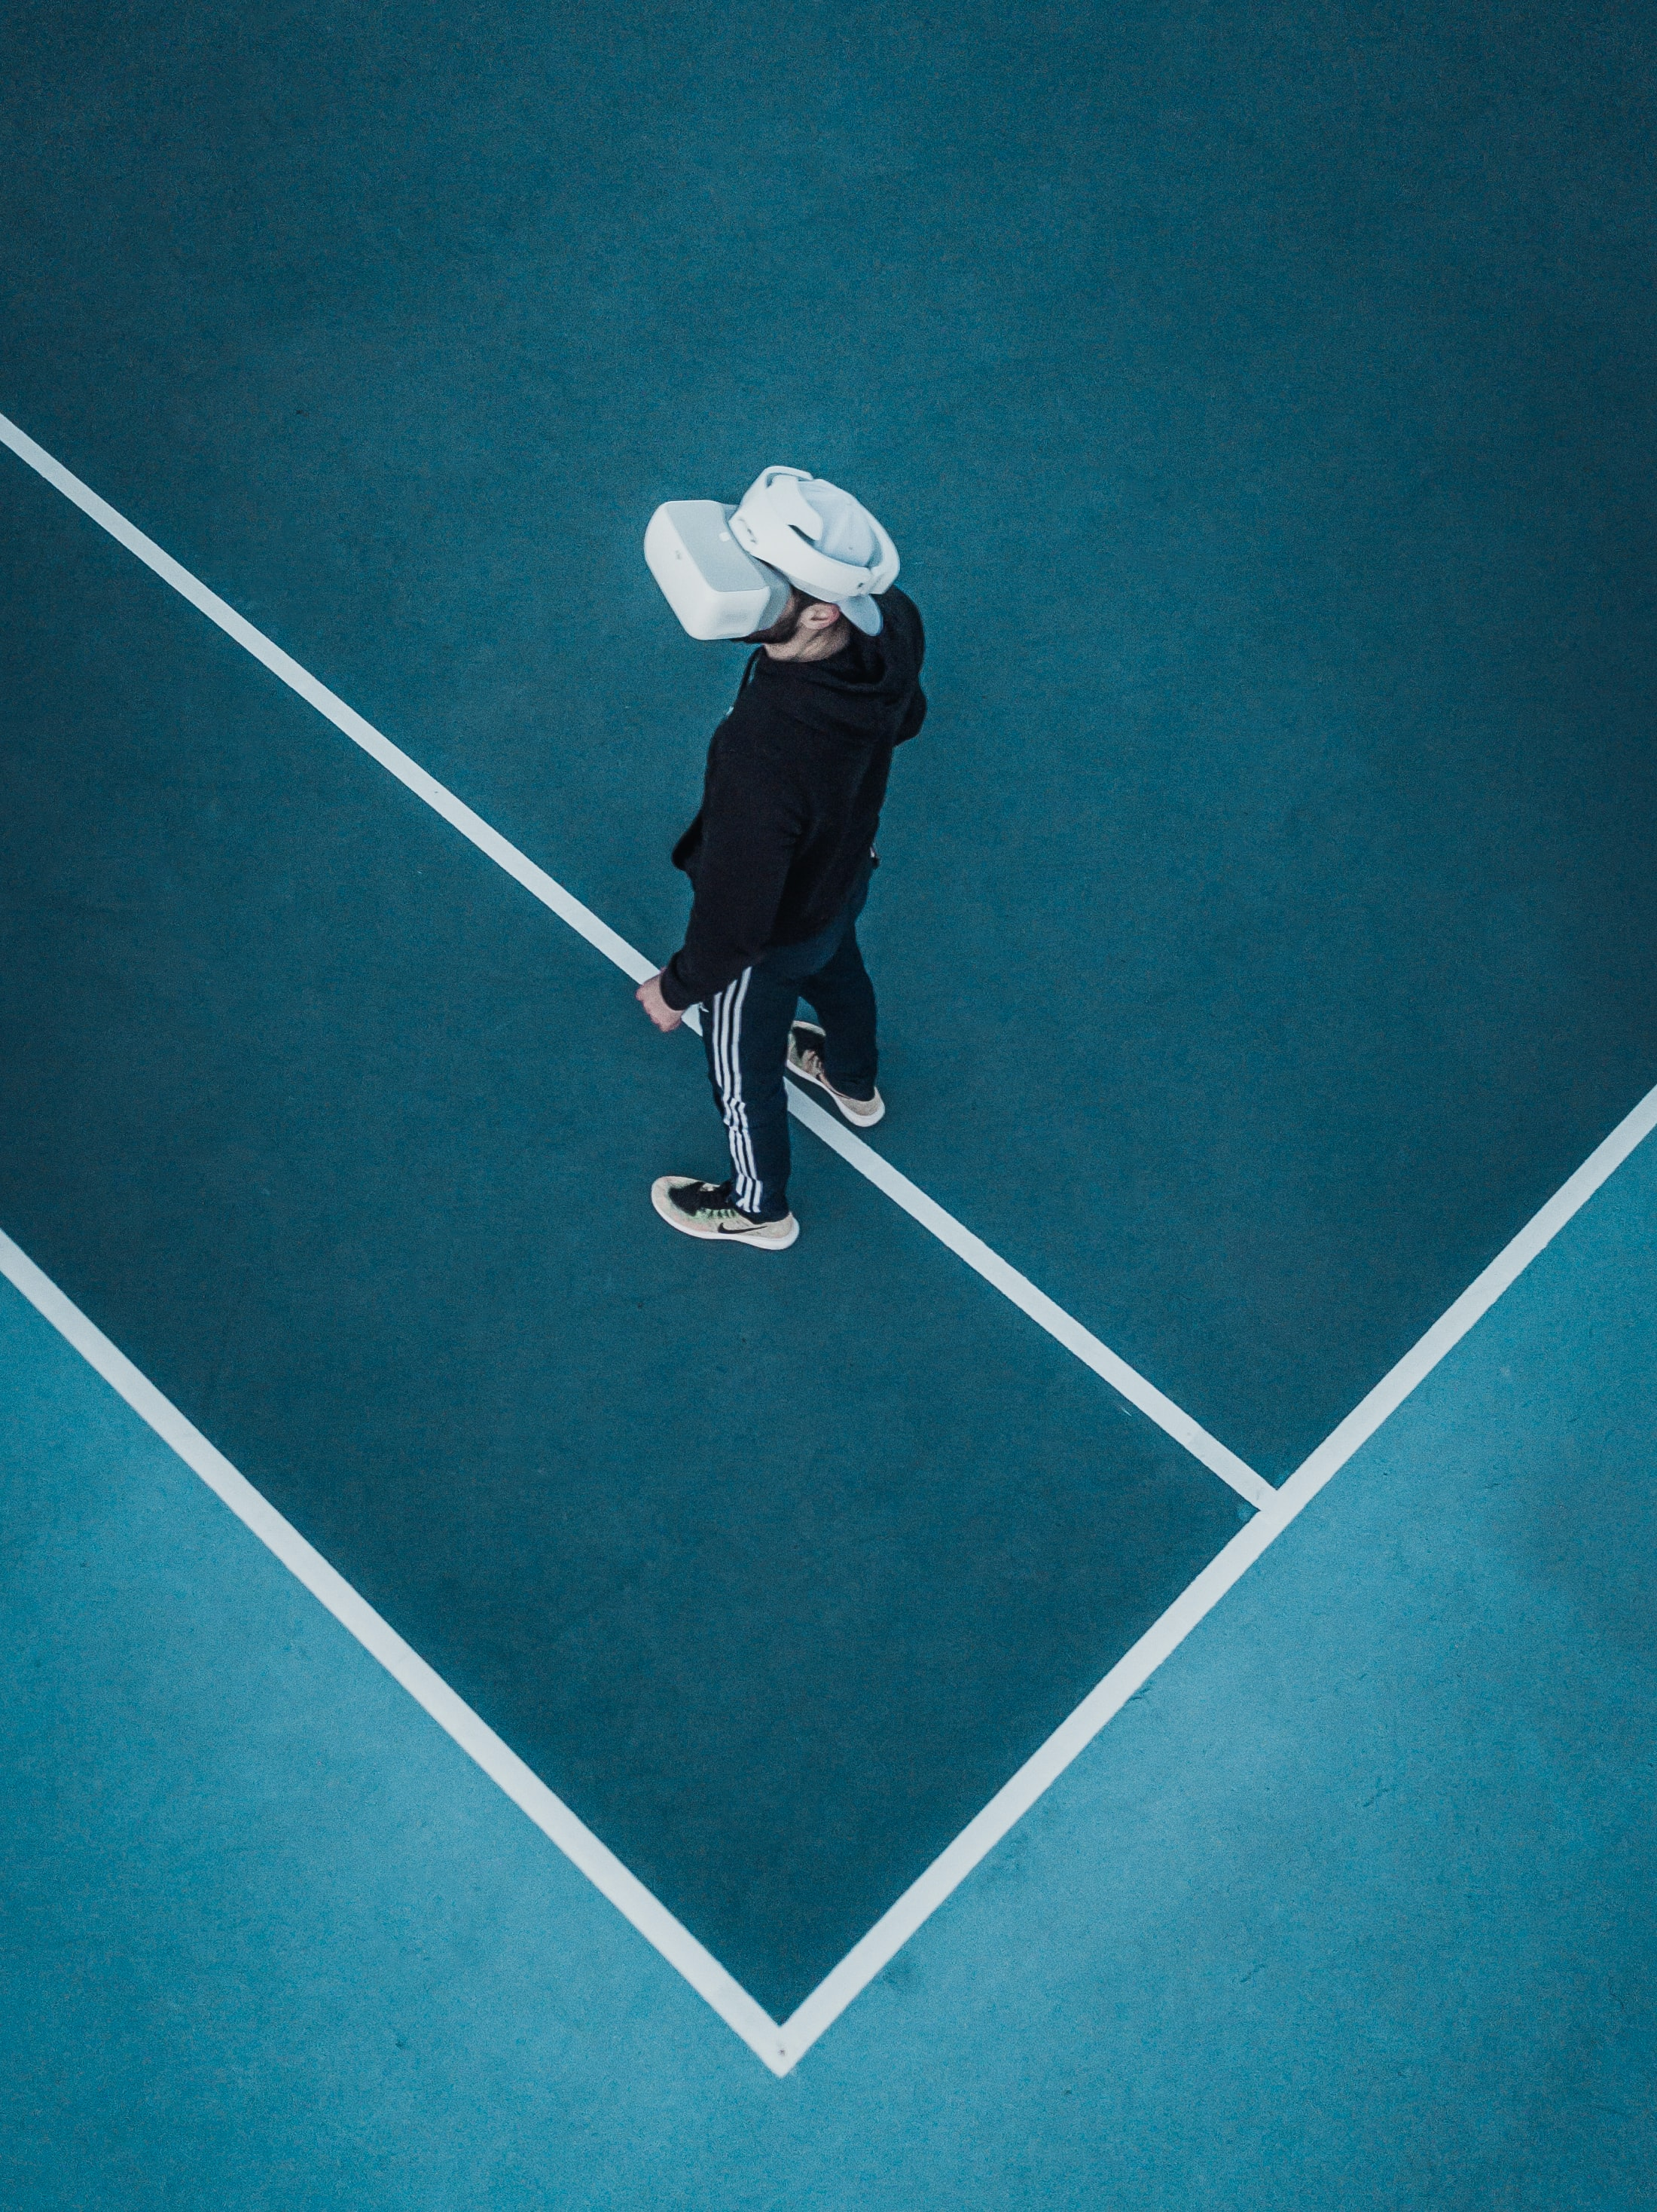 man in track suit wearing VR headset standing on tennis court